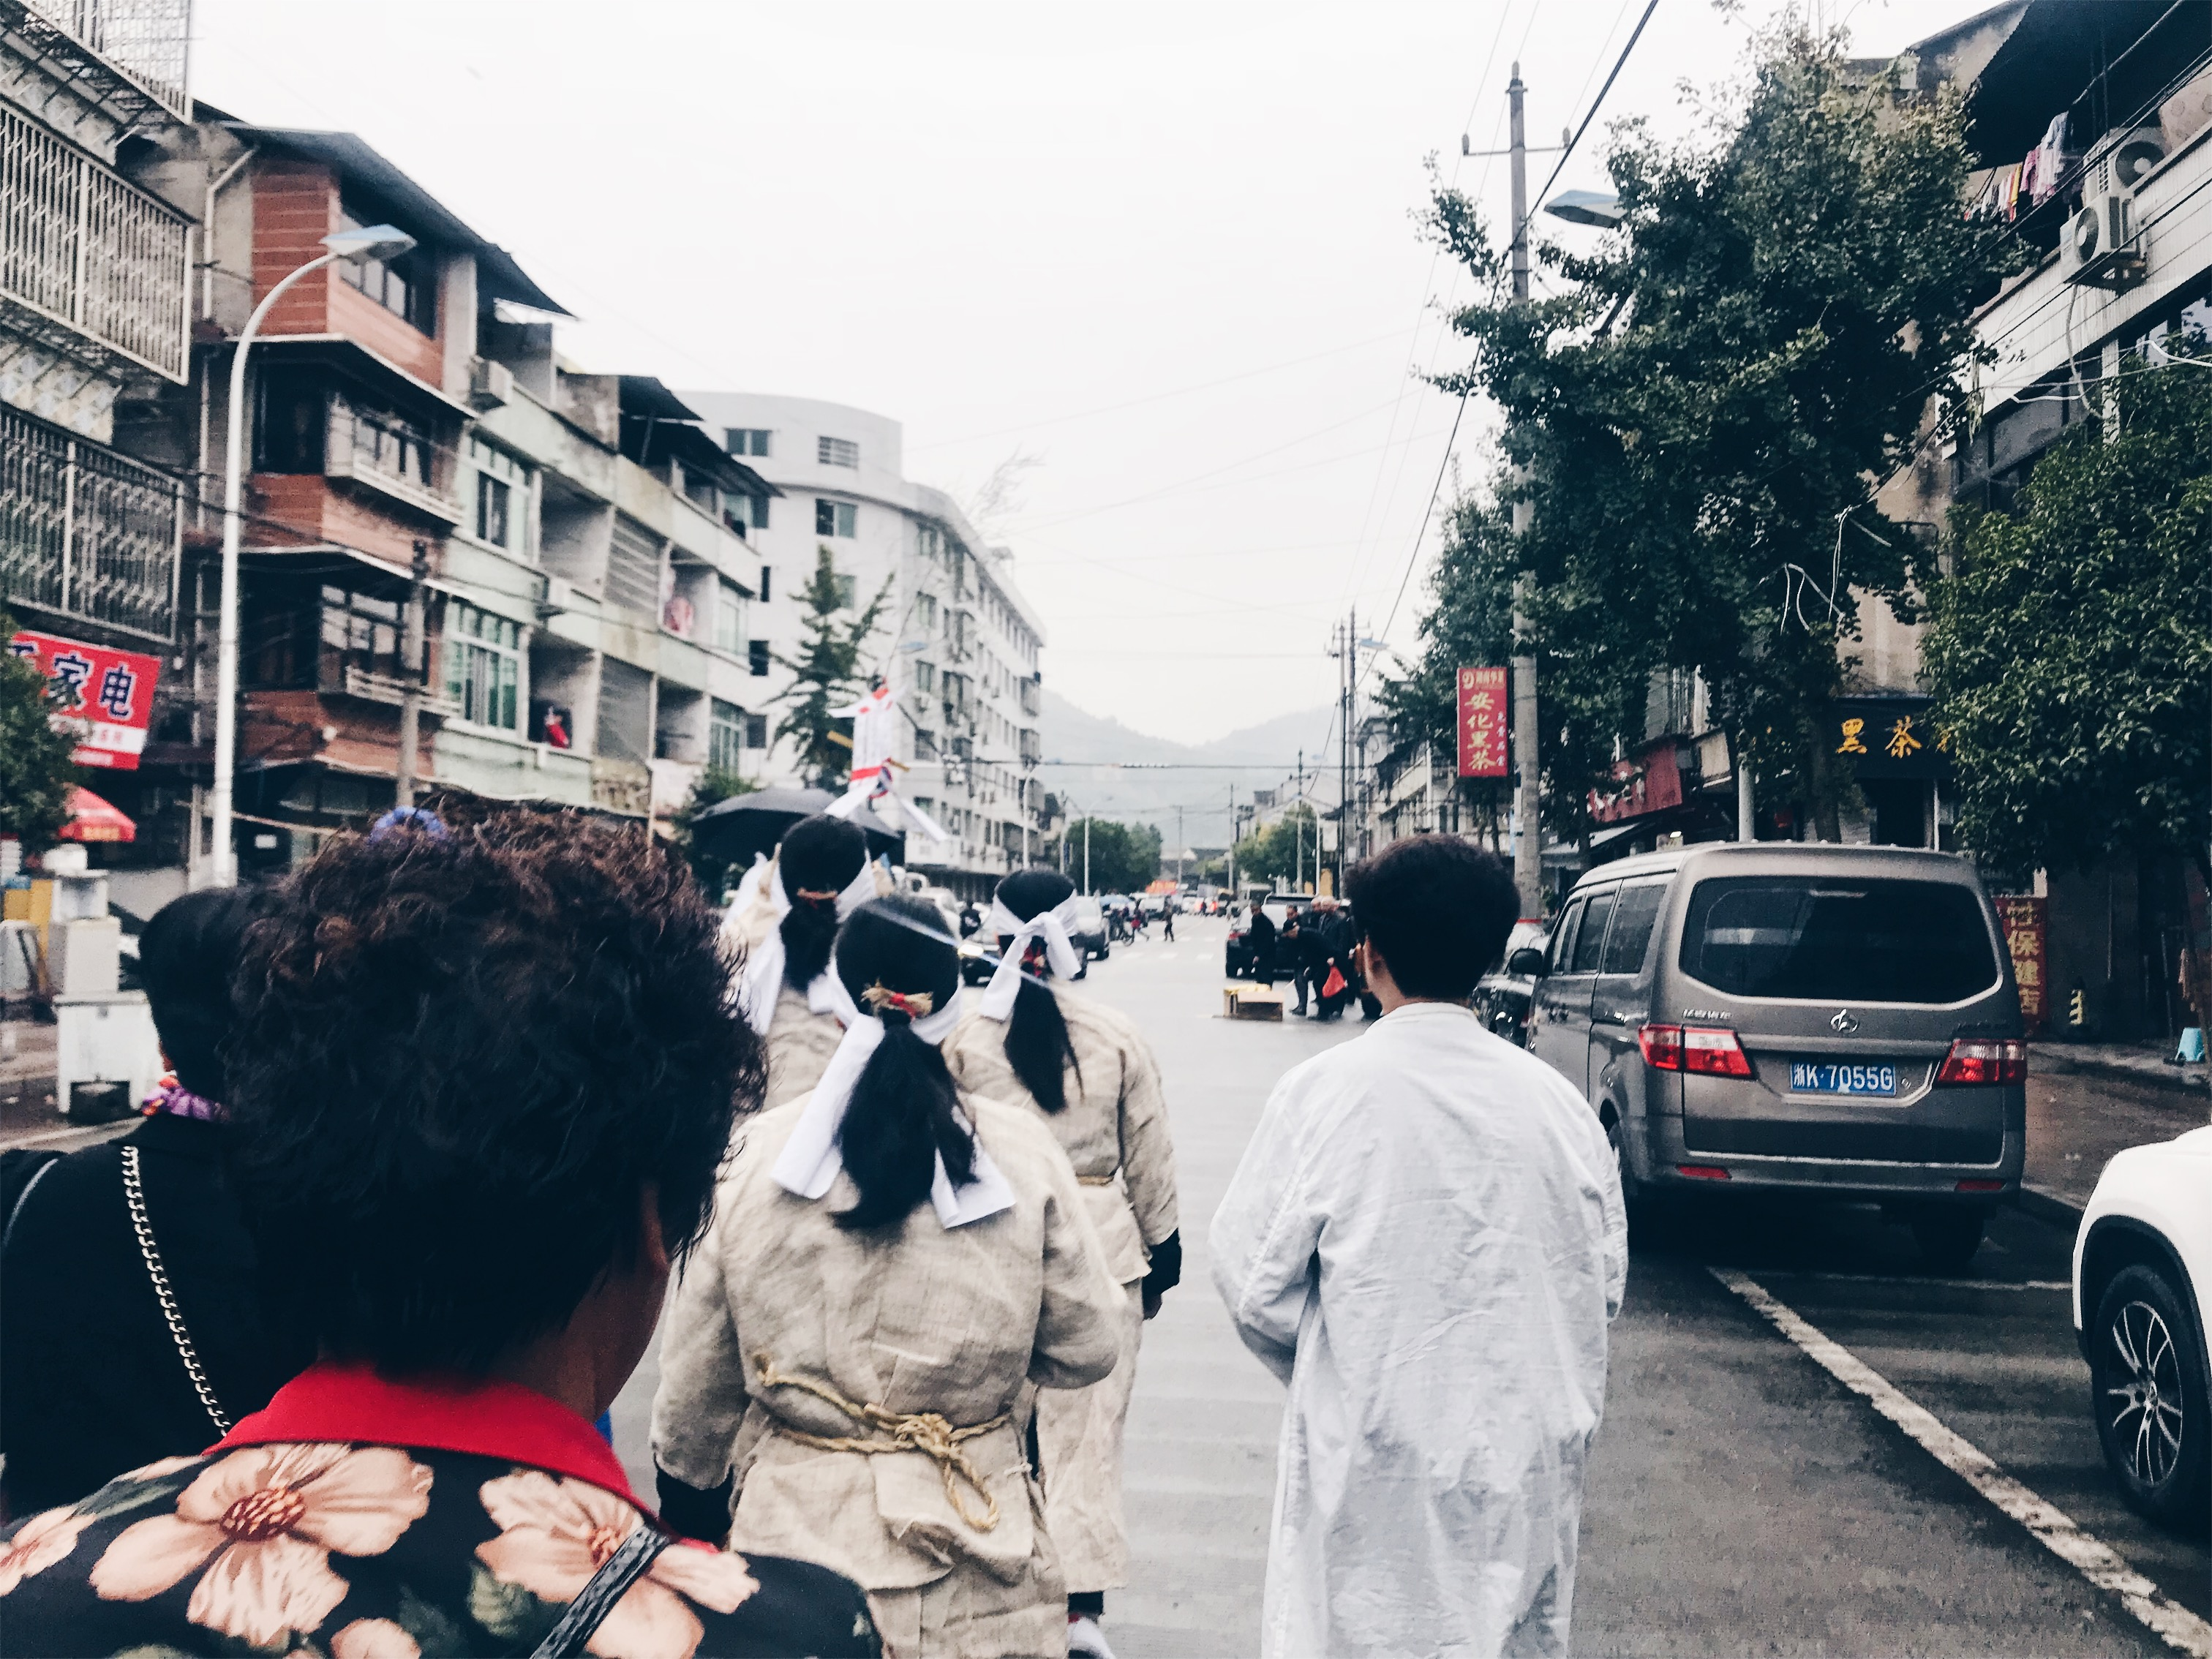 Chinese funeral - in traditional clothing through the village